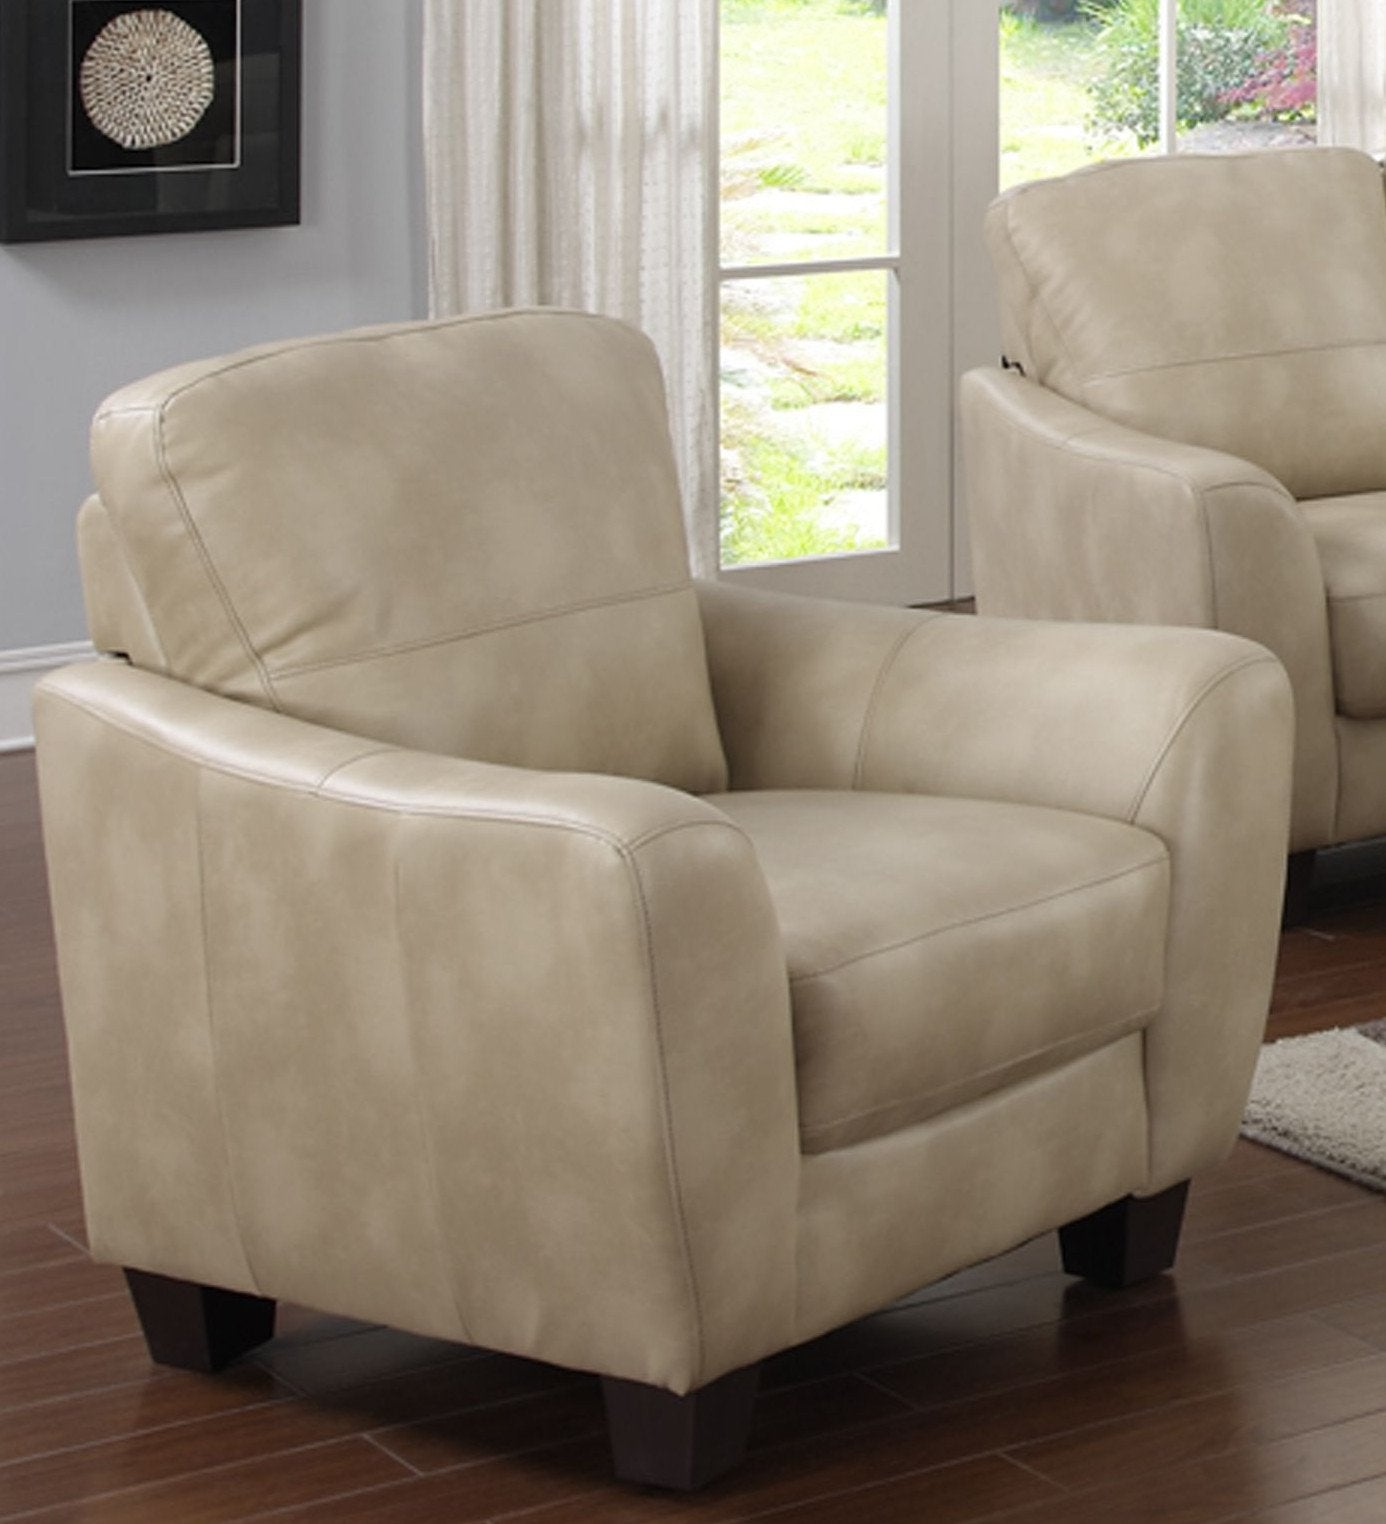 Chintaly Fremont-chr-tpe Club Bonded Leather Chair